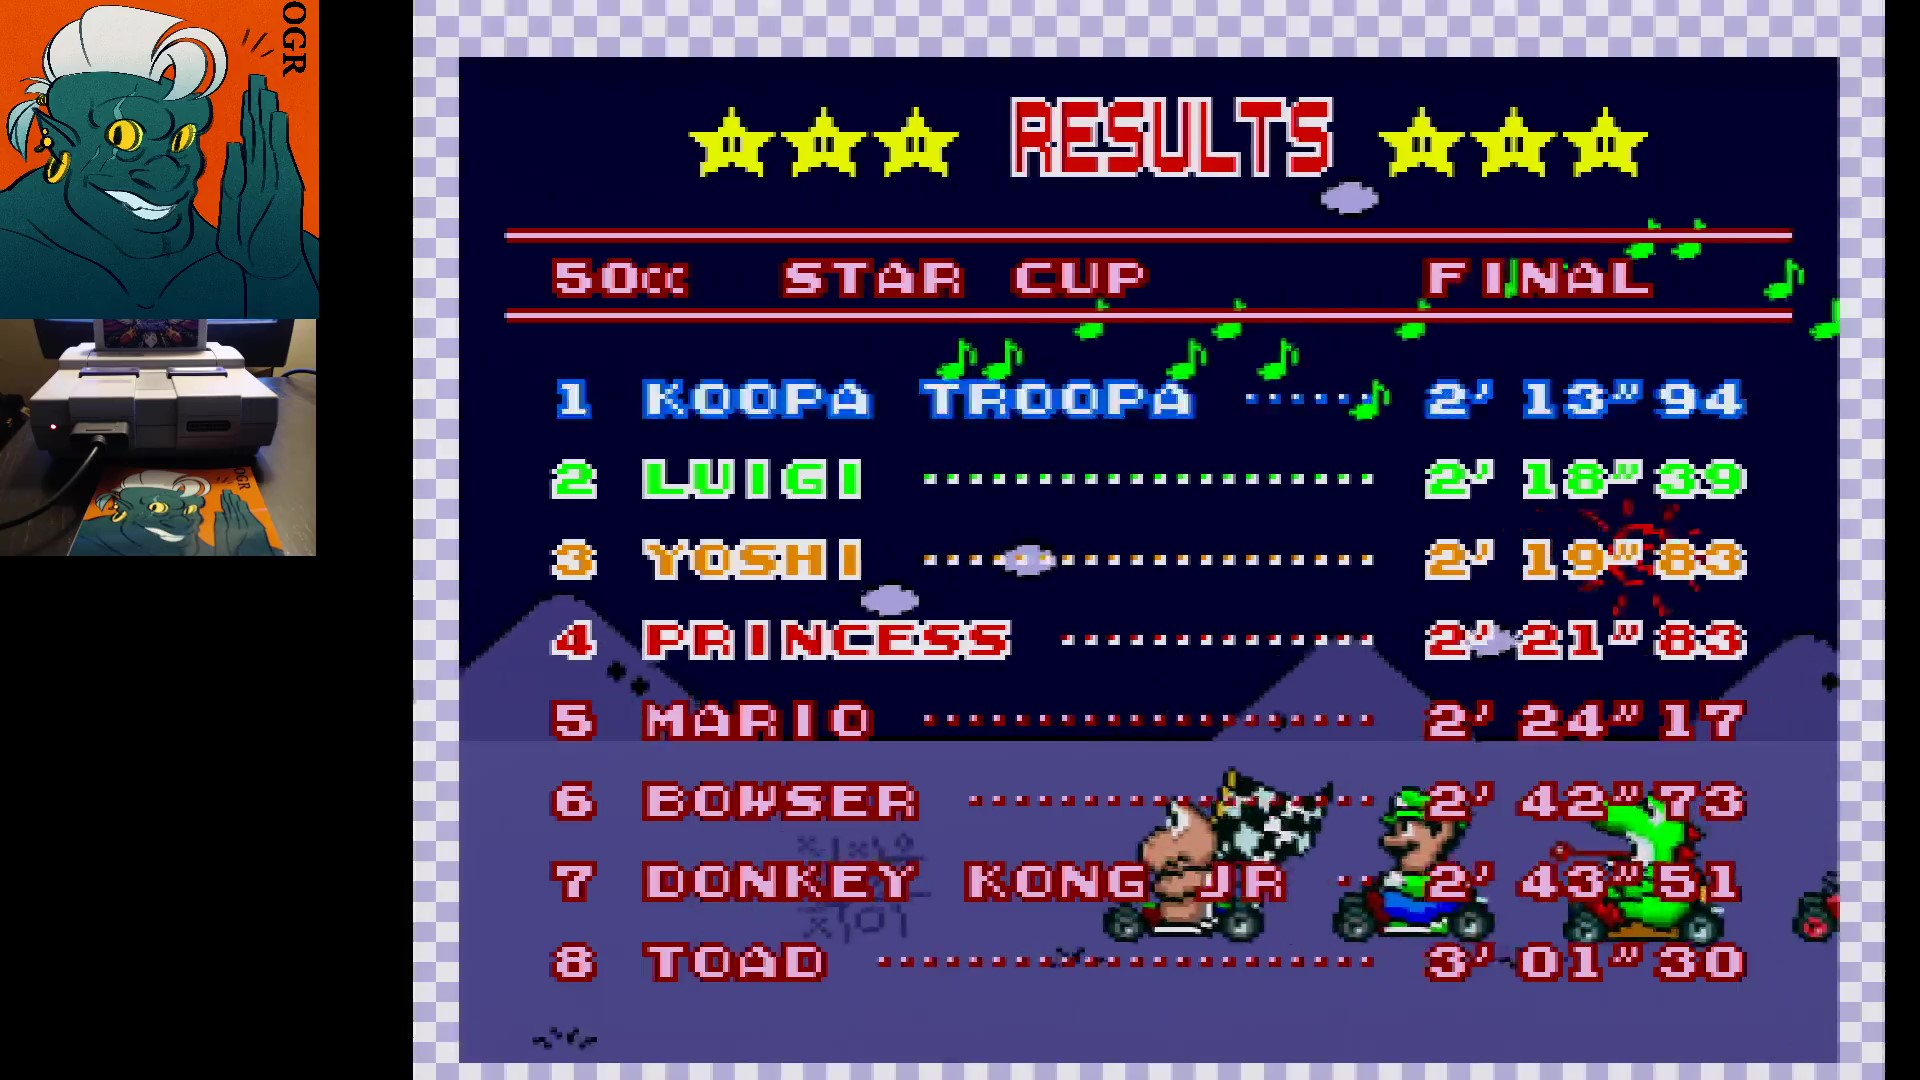 Super Mario Kart [Star Cup: Mario Circuit 4: 50CC] time of 0:02:13.94